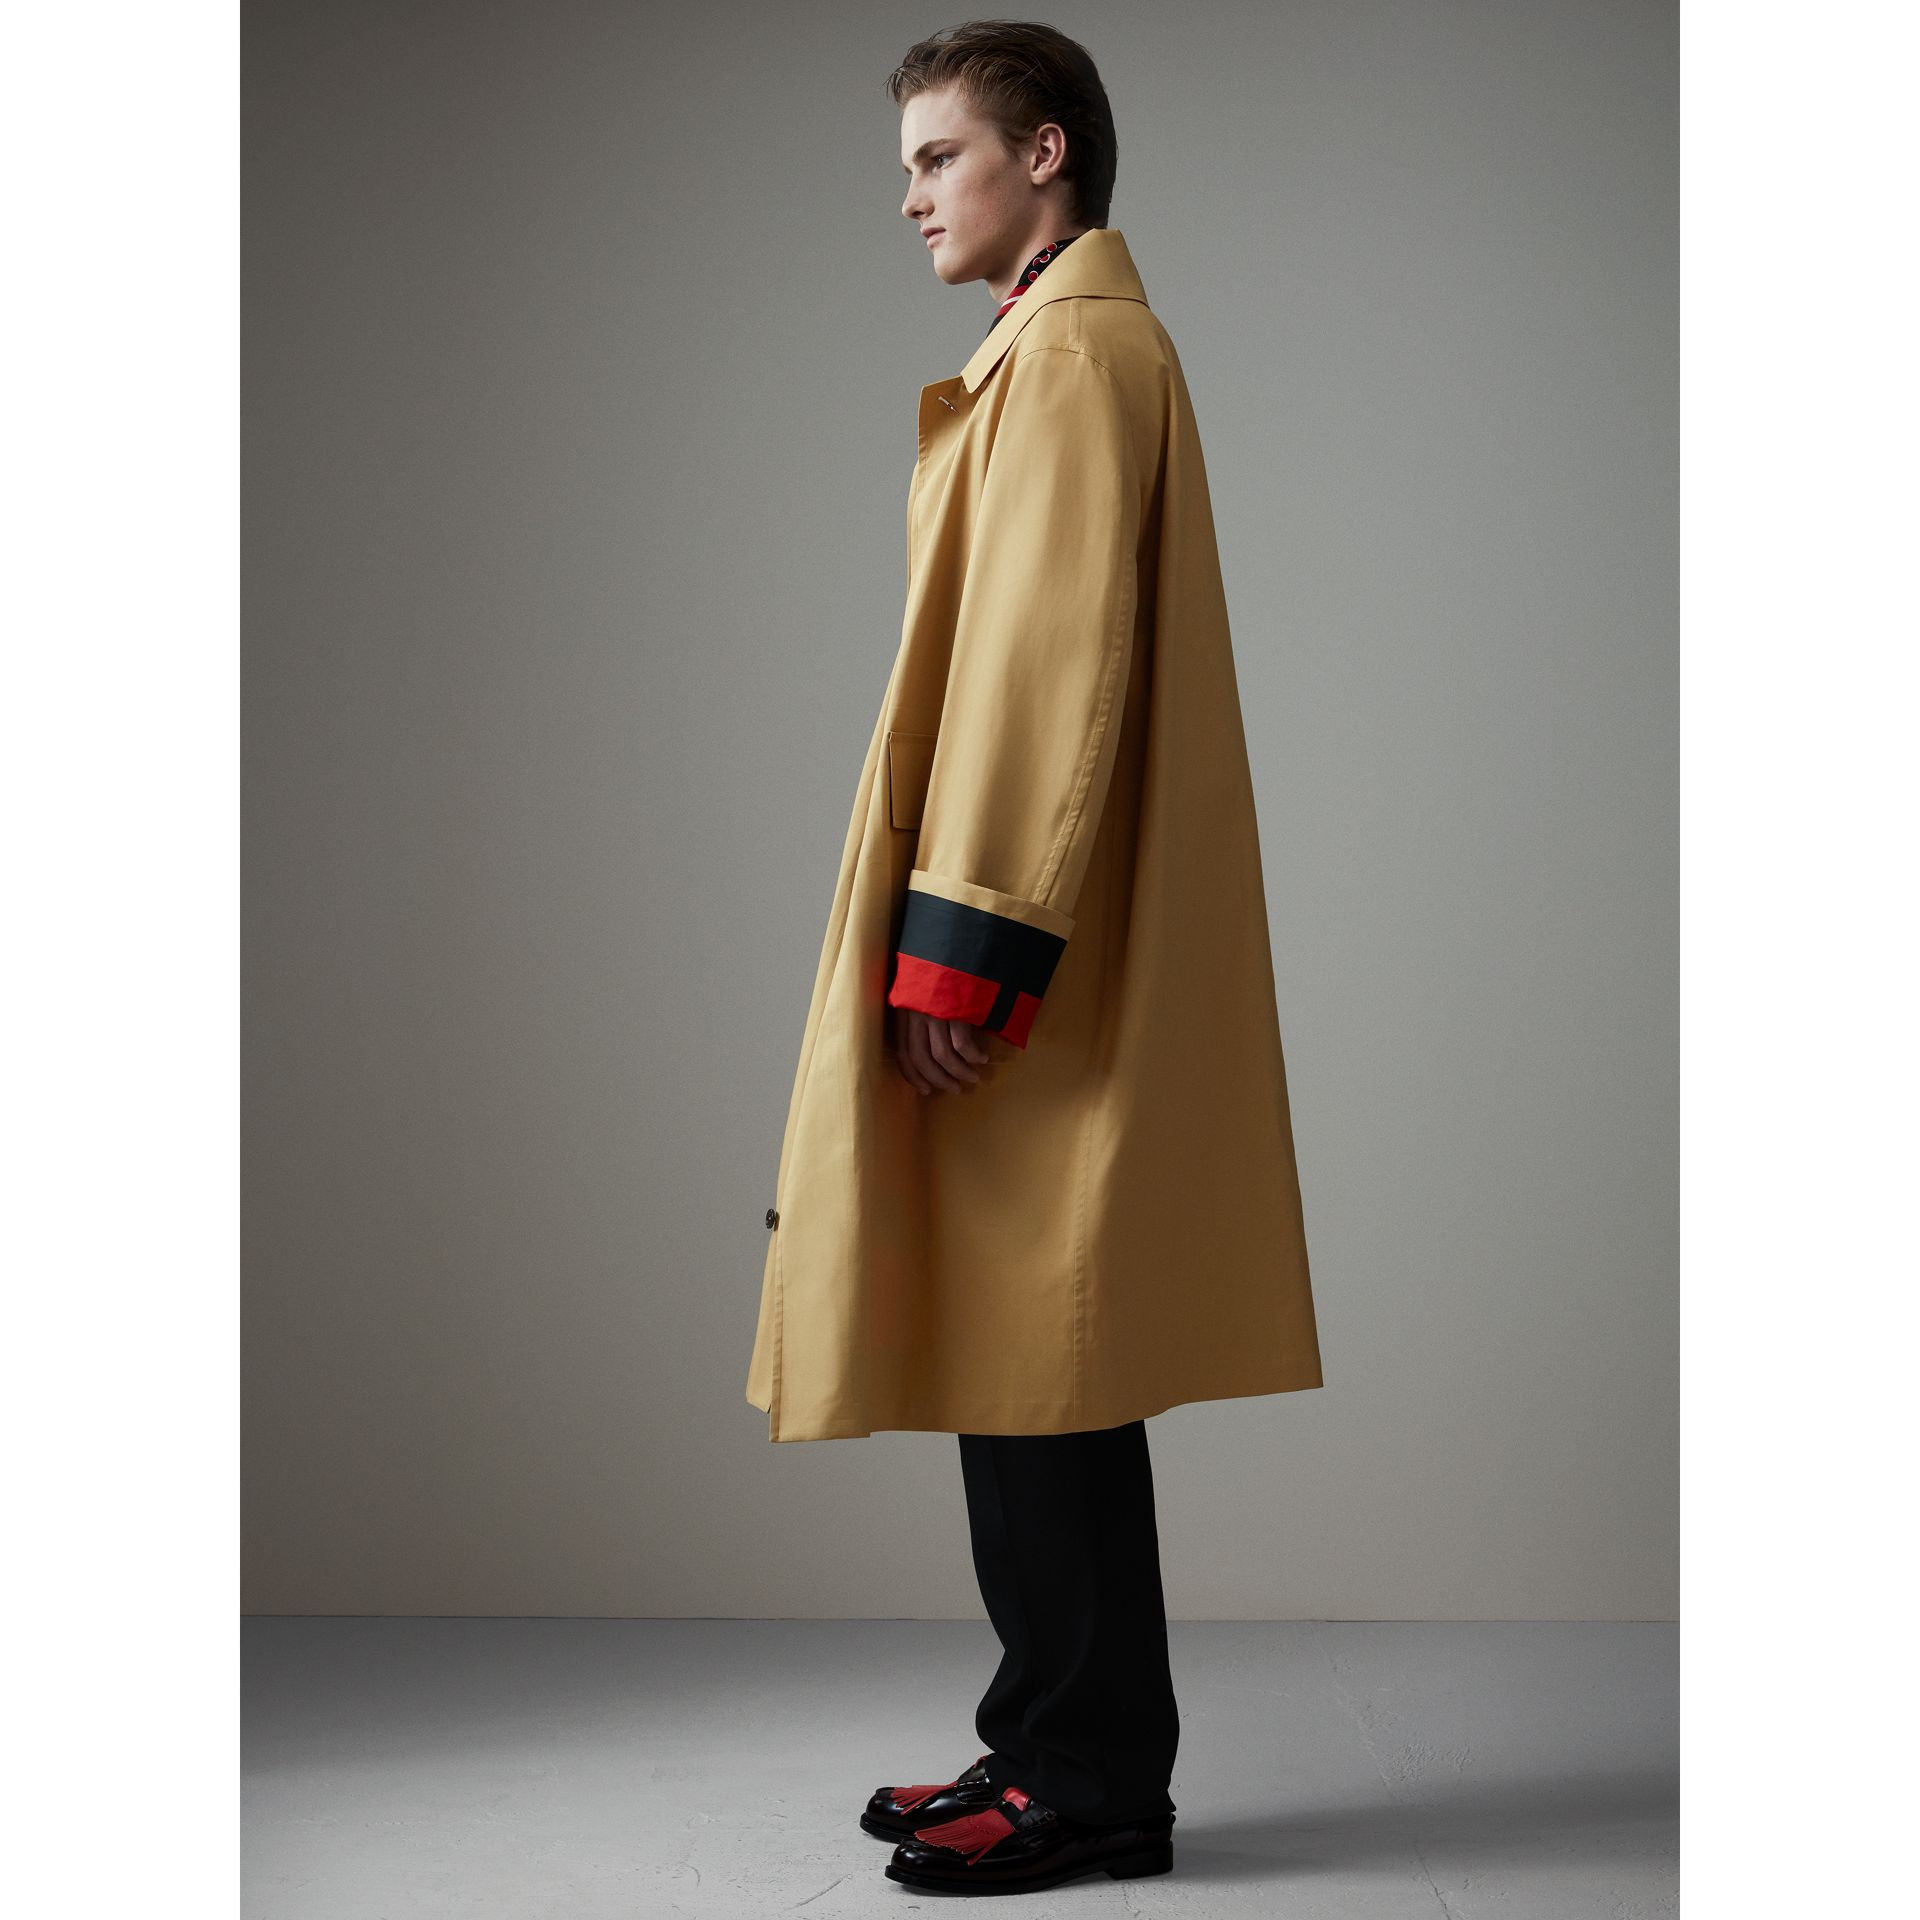 Bonded Cotton Oversized Seam-sealed Car Coat in Beige/red - Men | Burberry Singapore - gallery image 5